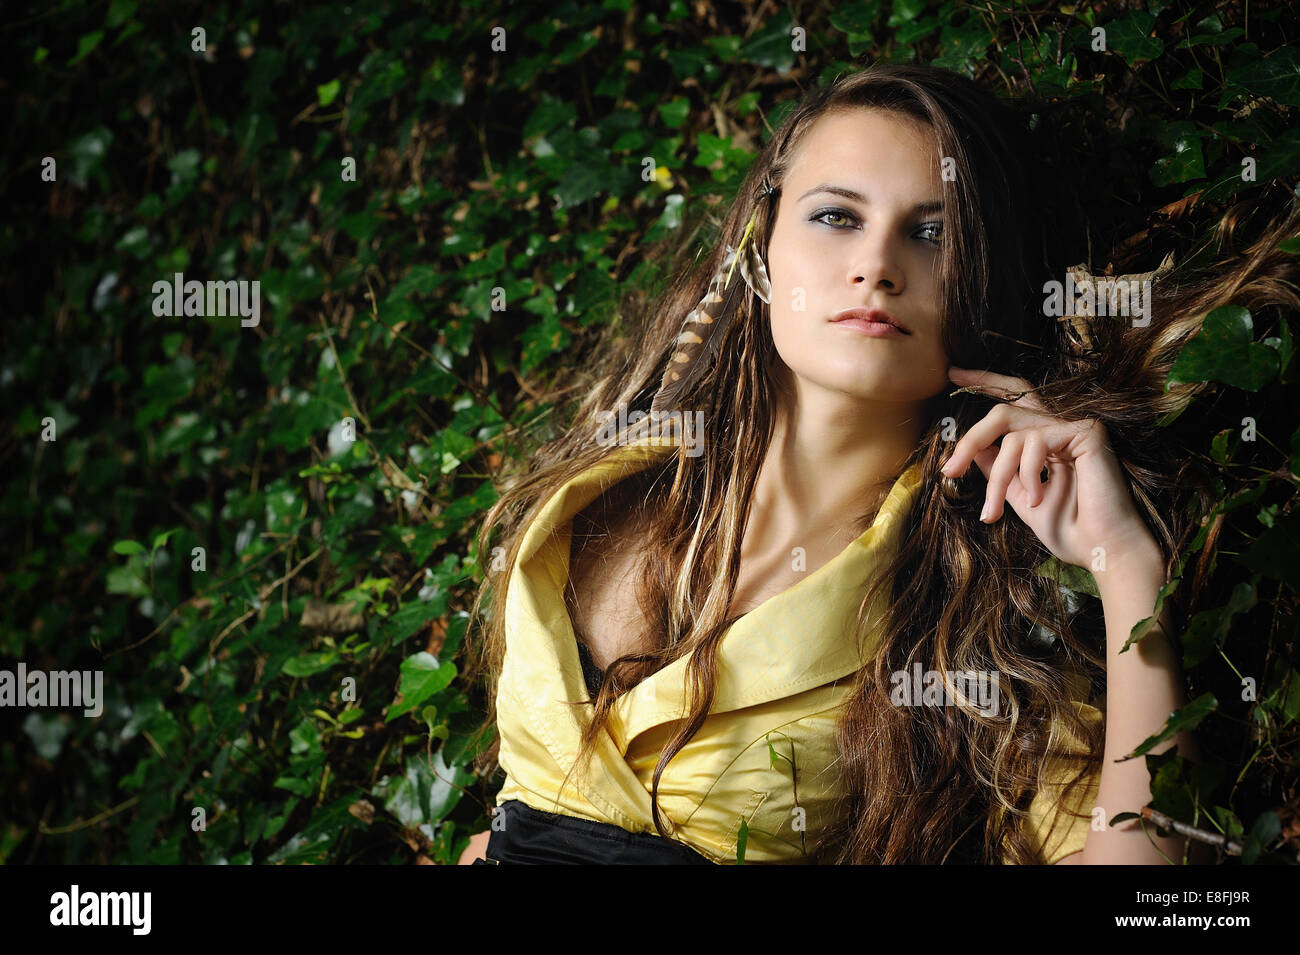 Portrait of woman with yellow dress surrounded by ivy - Stock Image